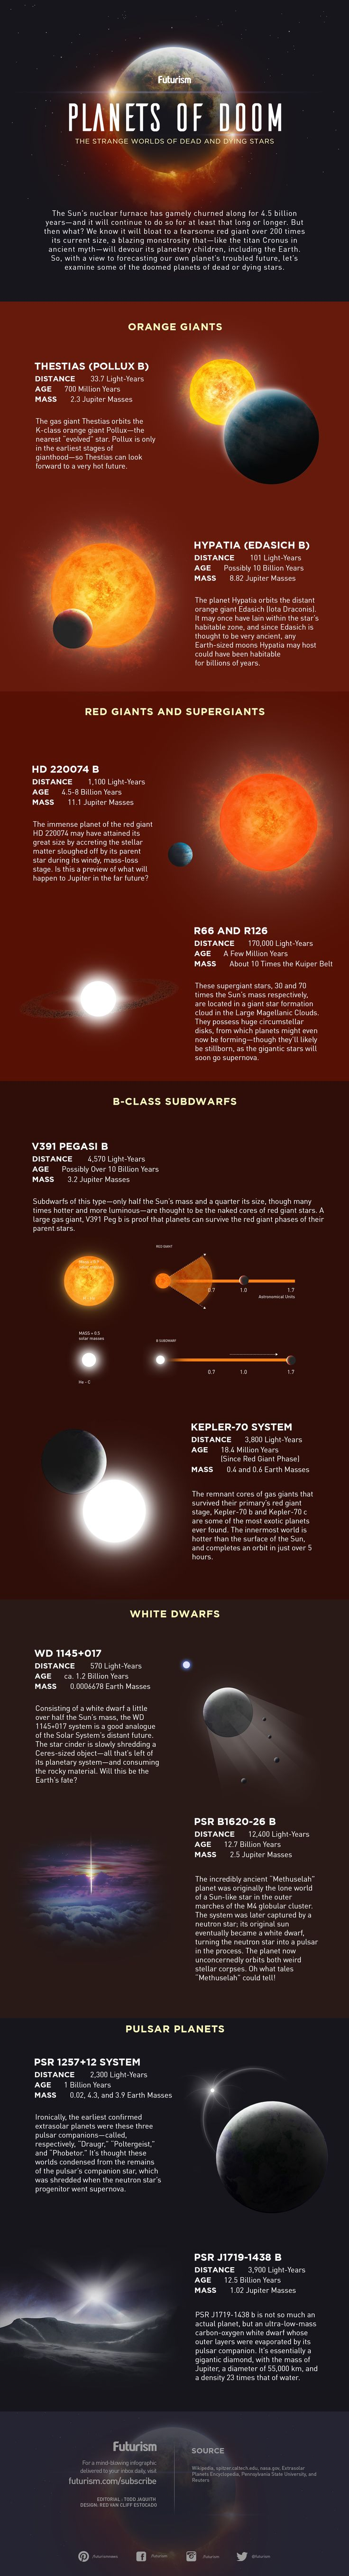 They've been fried, blasted, scoured, frozen, shattered and devoured. Meet the planets of doom.